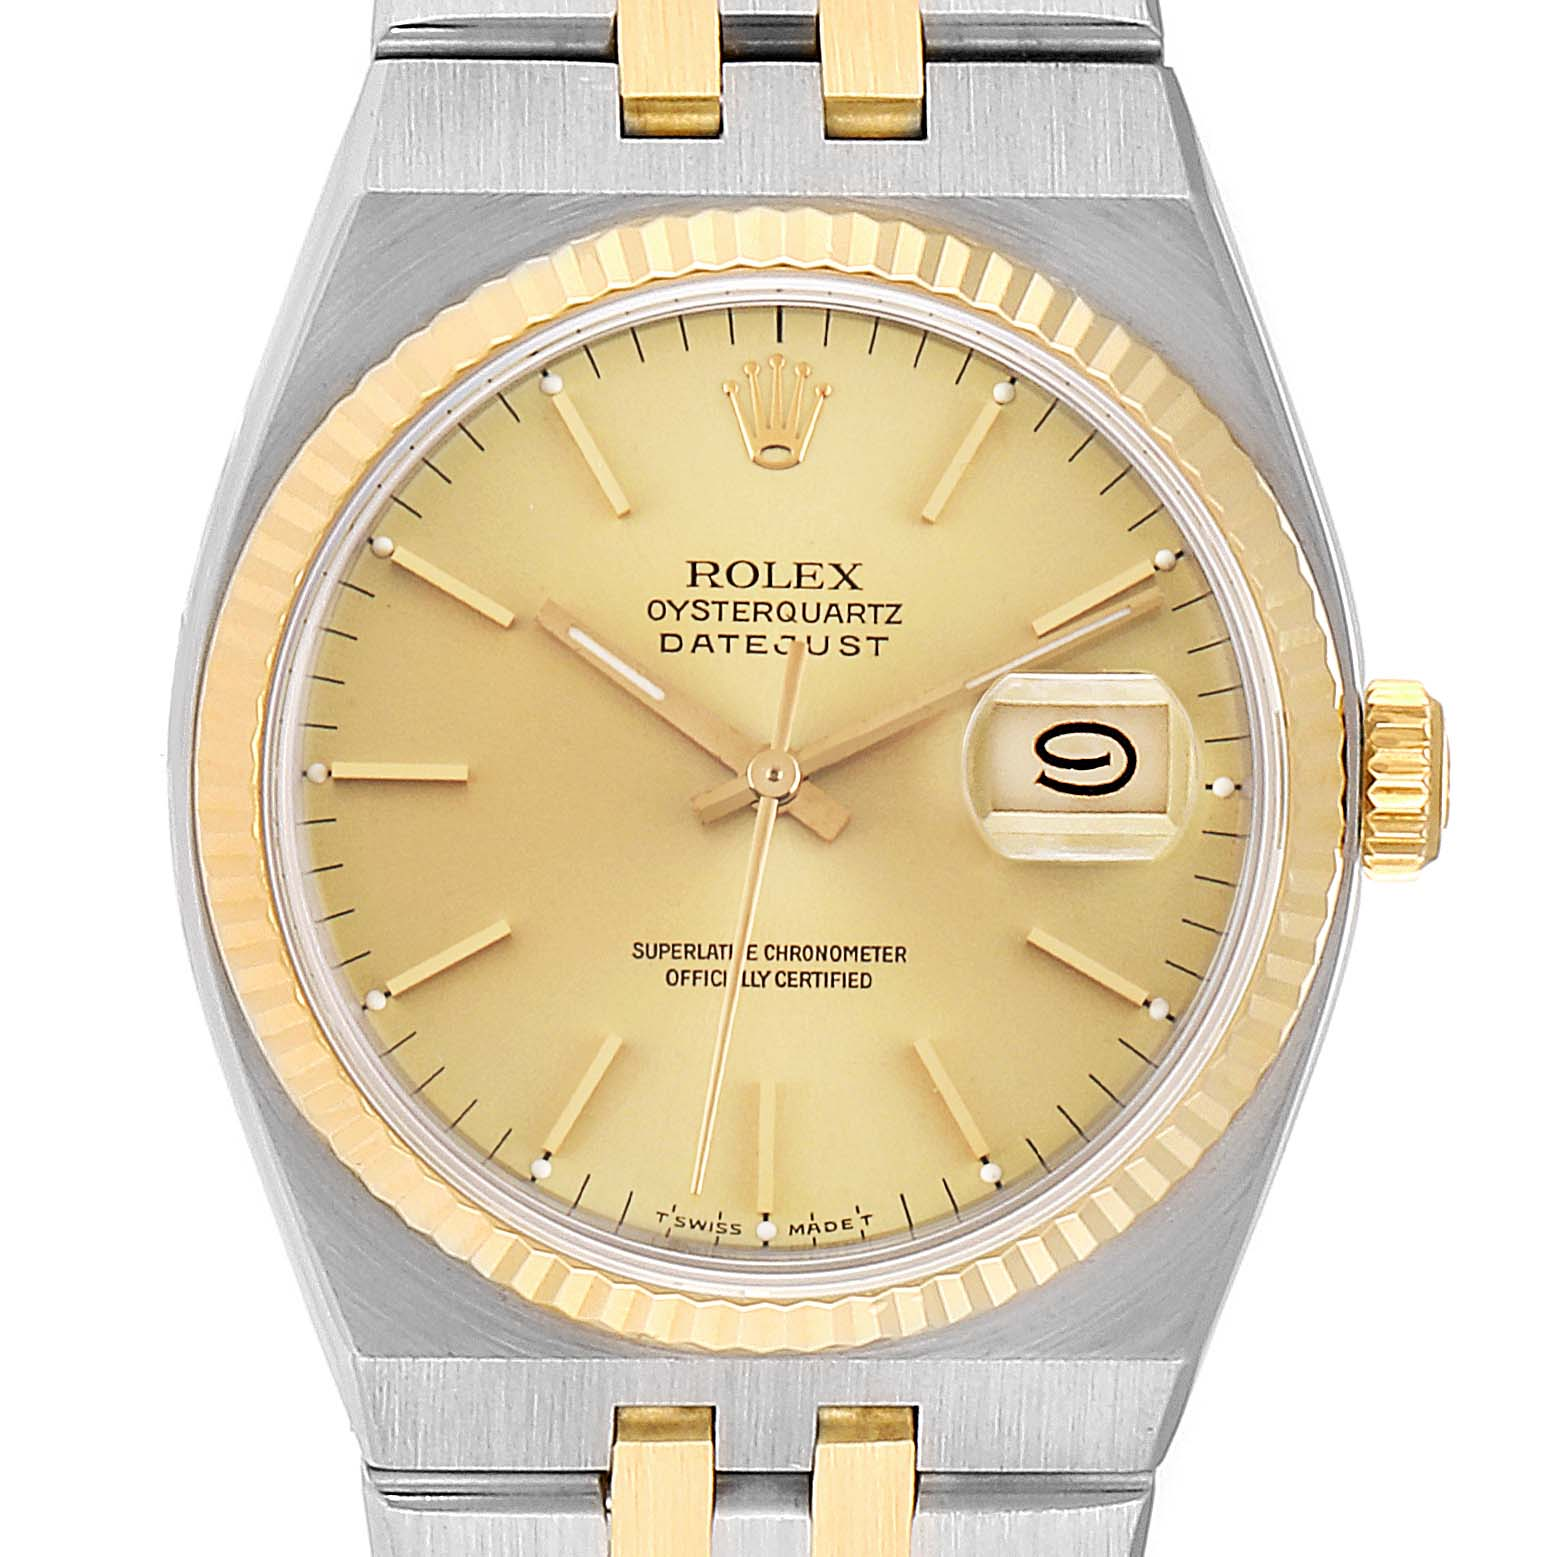 Rolex Oysterquartz Datejust Steel Yellow Gold Mens Watch 17013 Box Papers